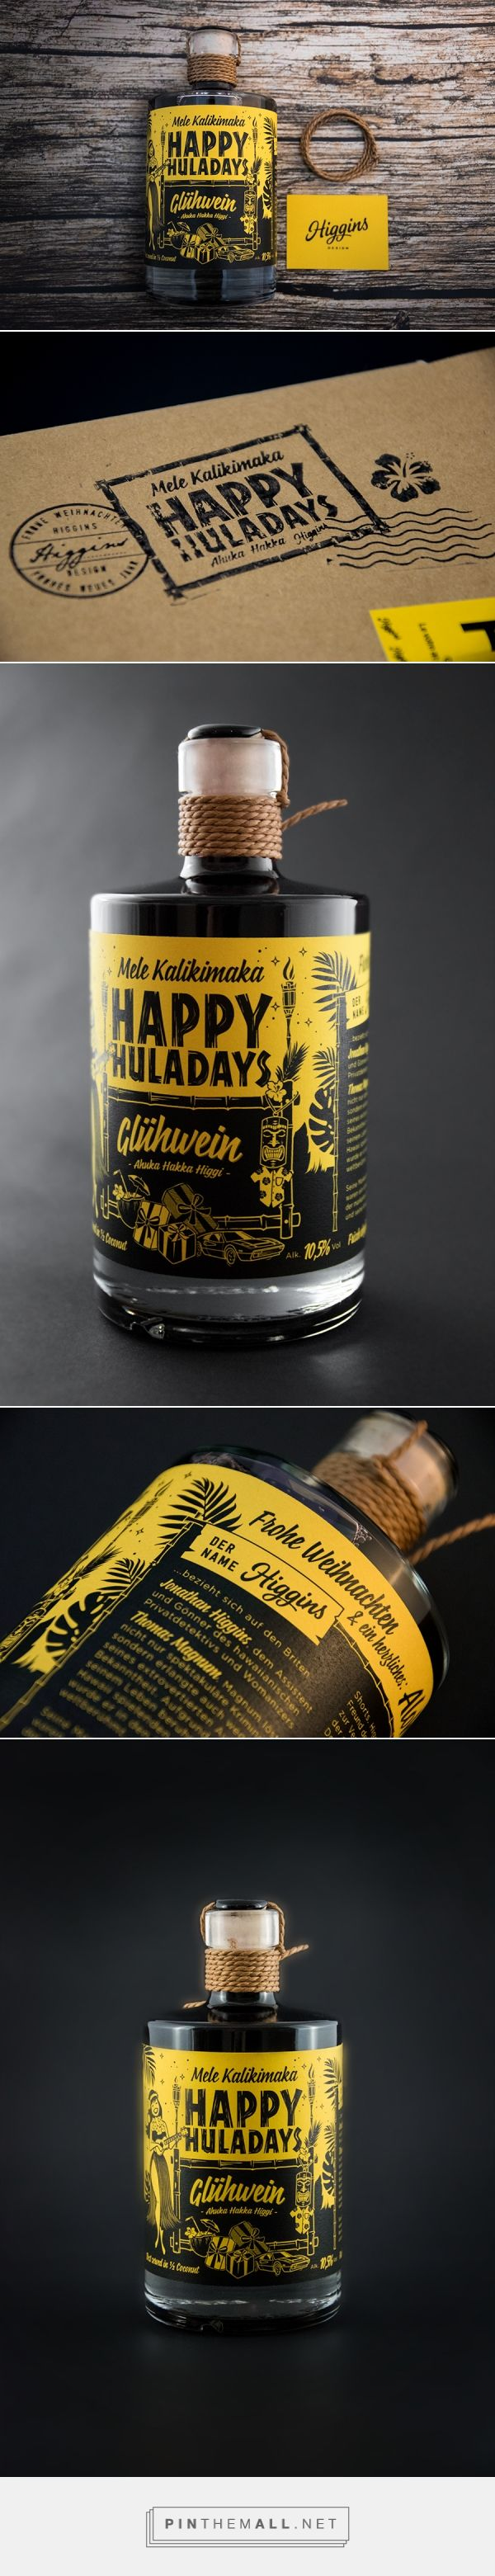 Christmas Printed Self-Promotion - Packaging of the World - Creative Package Design Gallery - http://www.packagingoftheworld.com/2017/02/christmas-printed-self-promotion.html